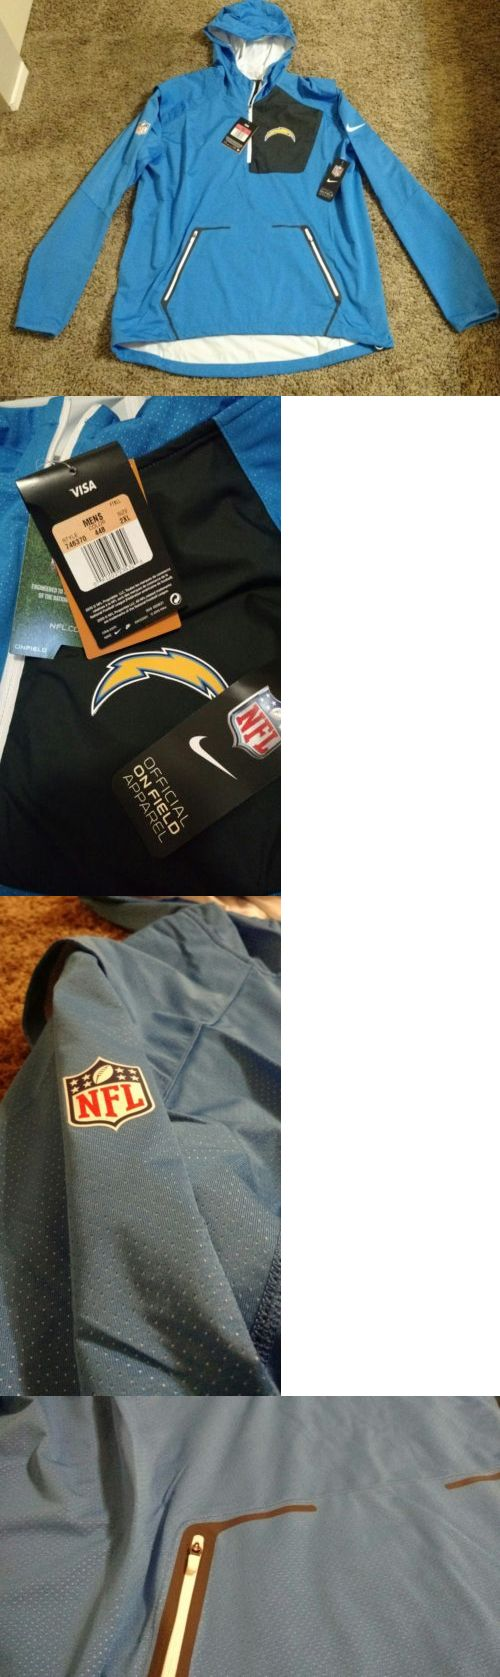 Football-NFL 206: Men S Nike Nfl Los Angeles Chargers Football Hooded Windbreaker Jacket 2Xl (Xxl) -> BUY IT NOW ONLY: $45 on eBay!